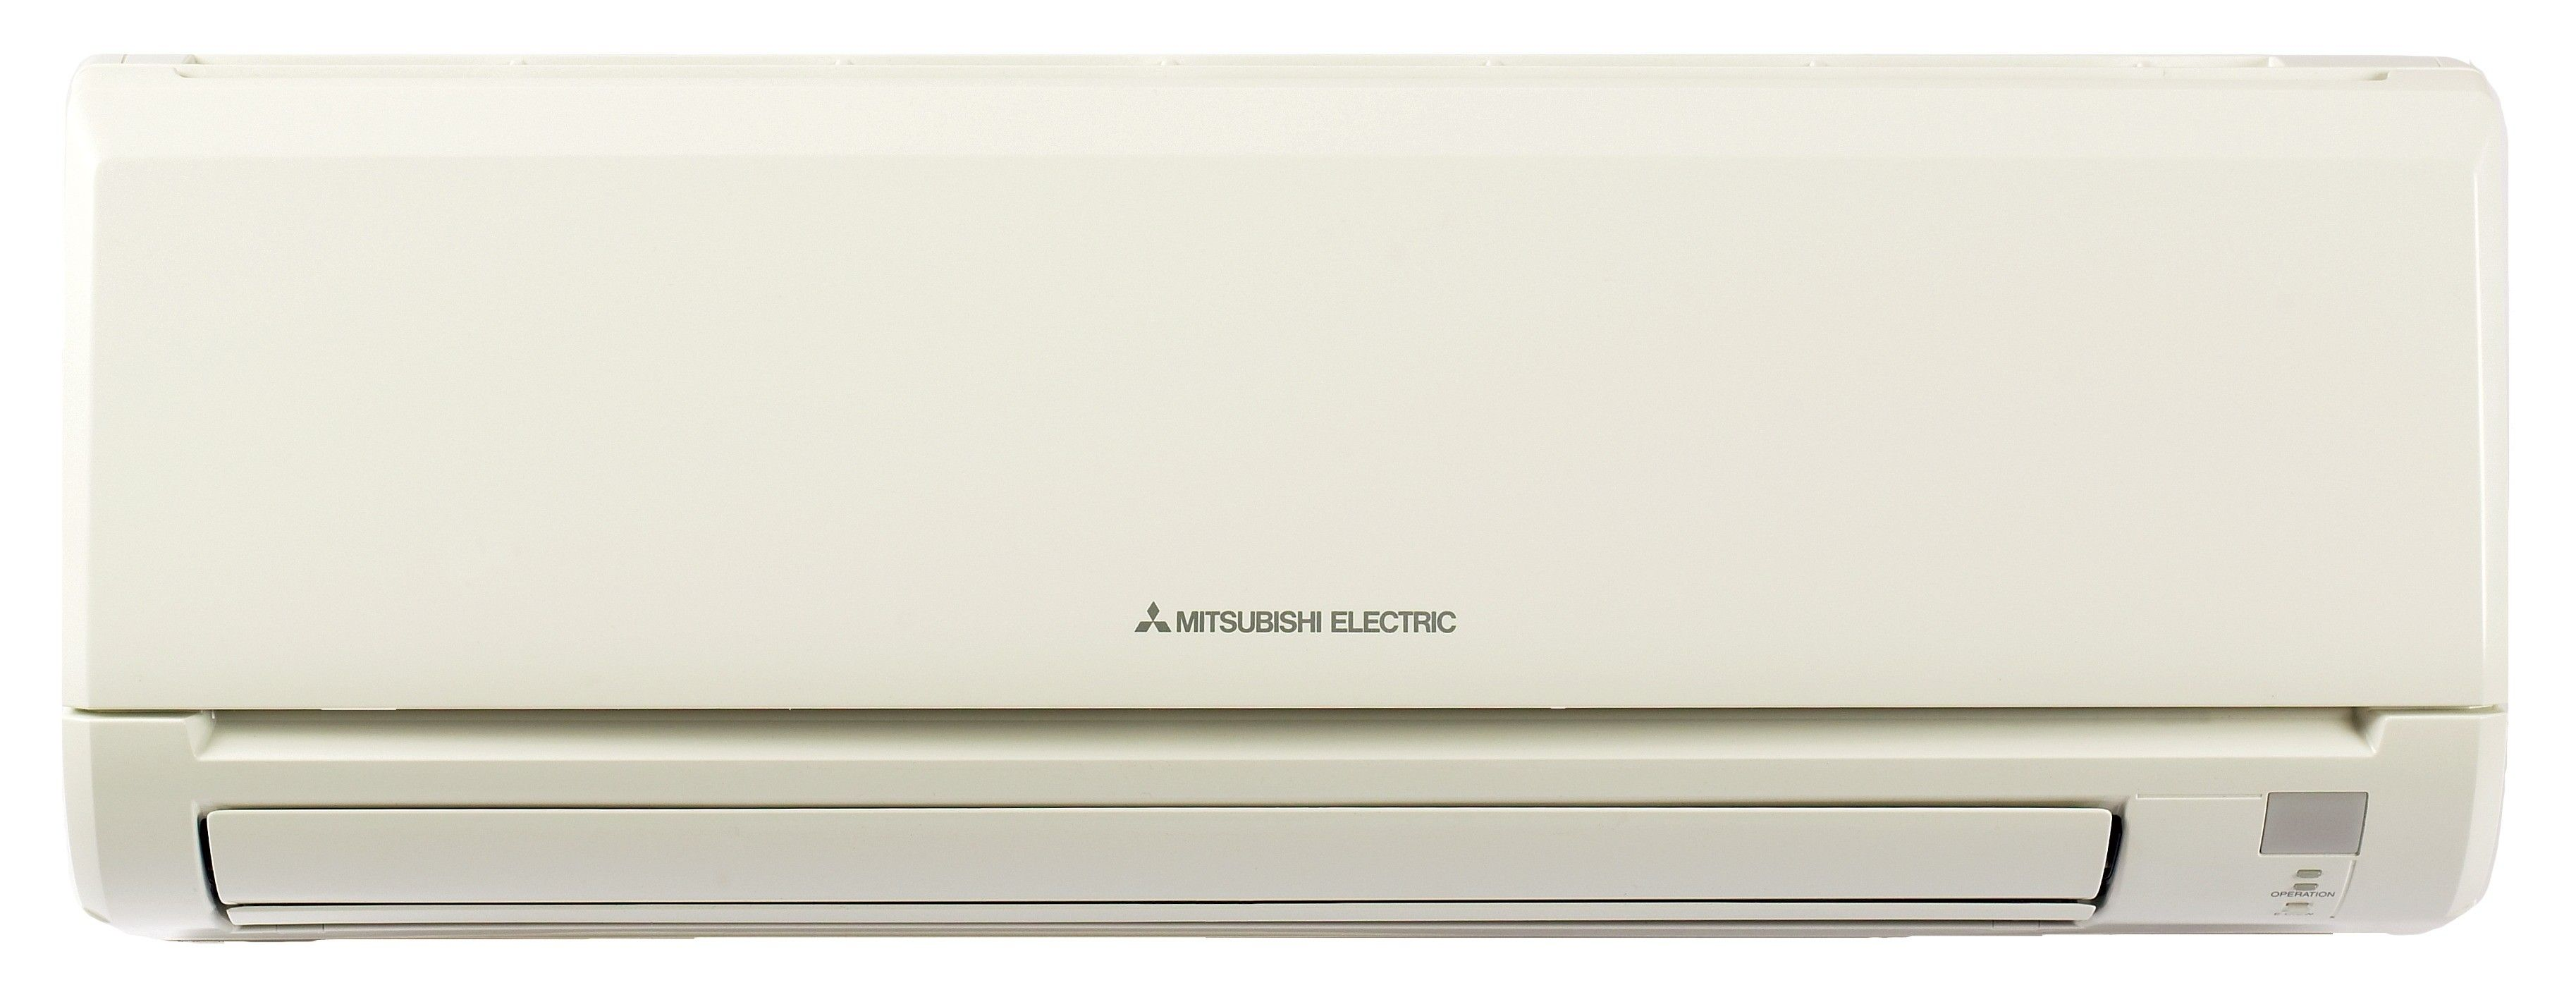 12K BTU MItsubishi MSZGL Wall-Mounted Heat Pump Indoor Unit ...